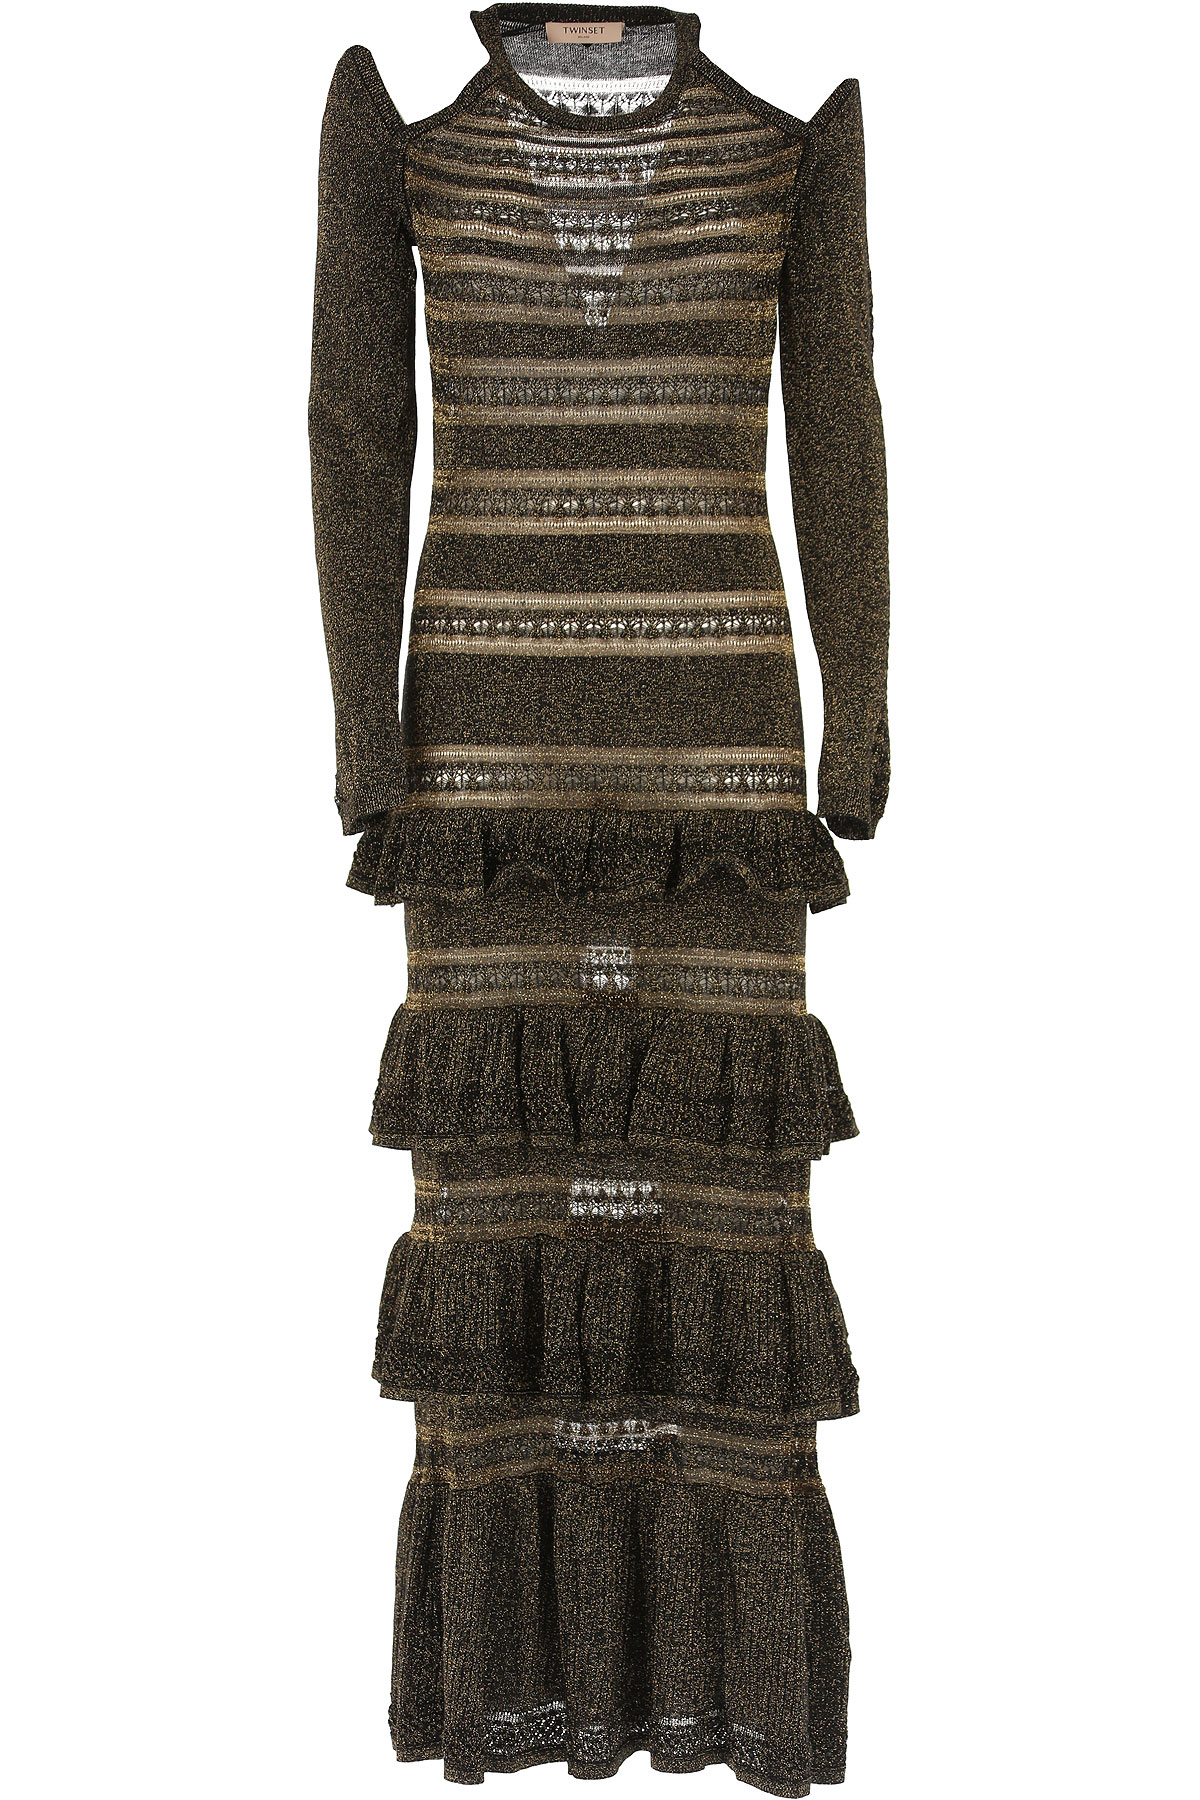 Twin Set by Simona Barbieri Dress for Women, Evening Cocktail Party On Sale, Black, polyester, 2019, 4 6